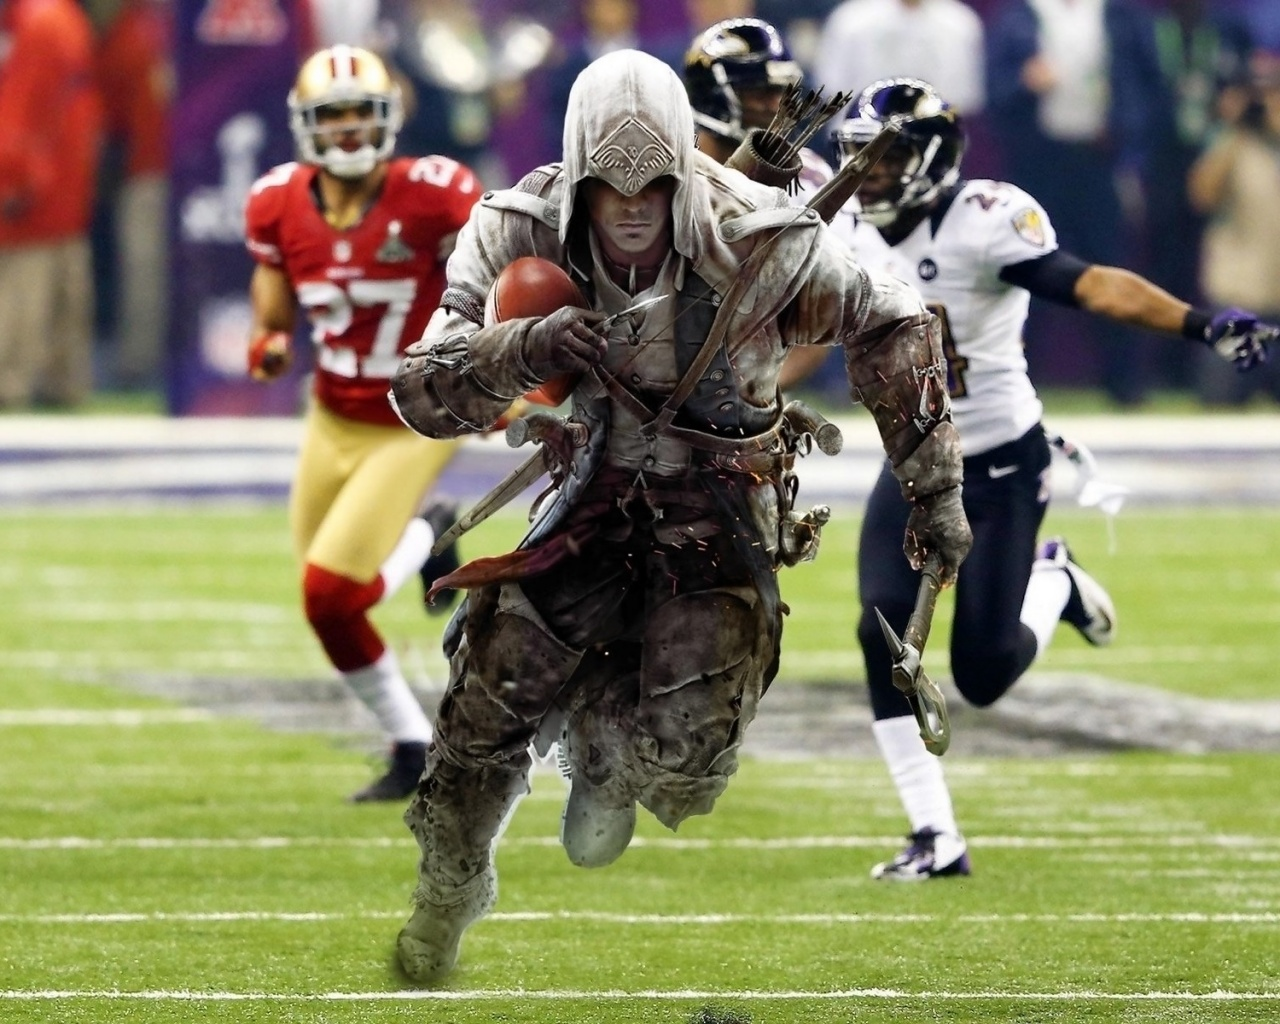 Assassins creed football